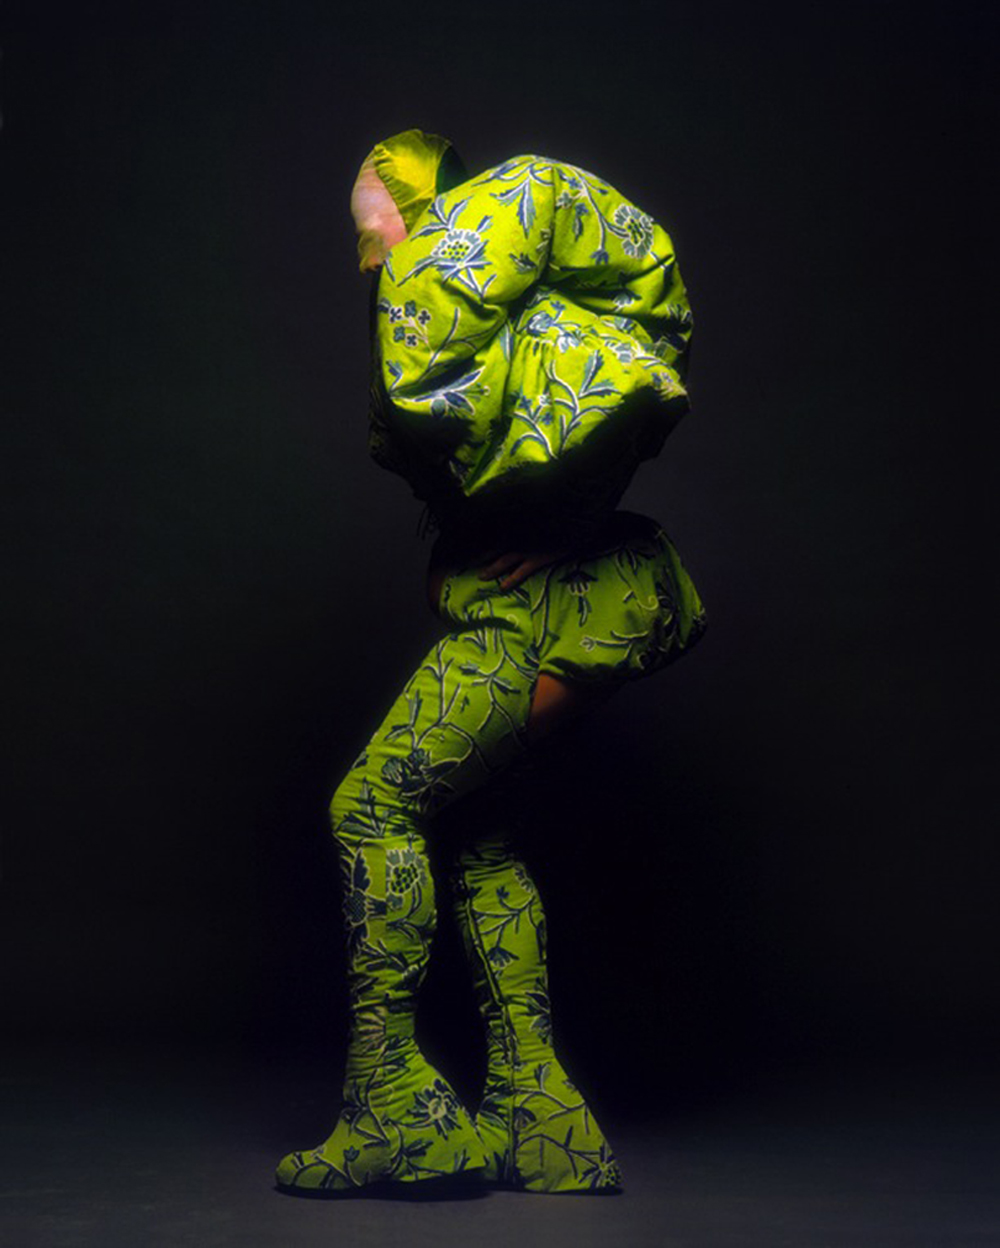 Fergus Greer - Leigh Bowery Session III-Look 11 - agosto 1990